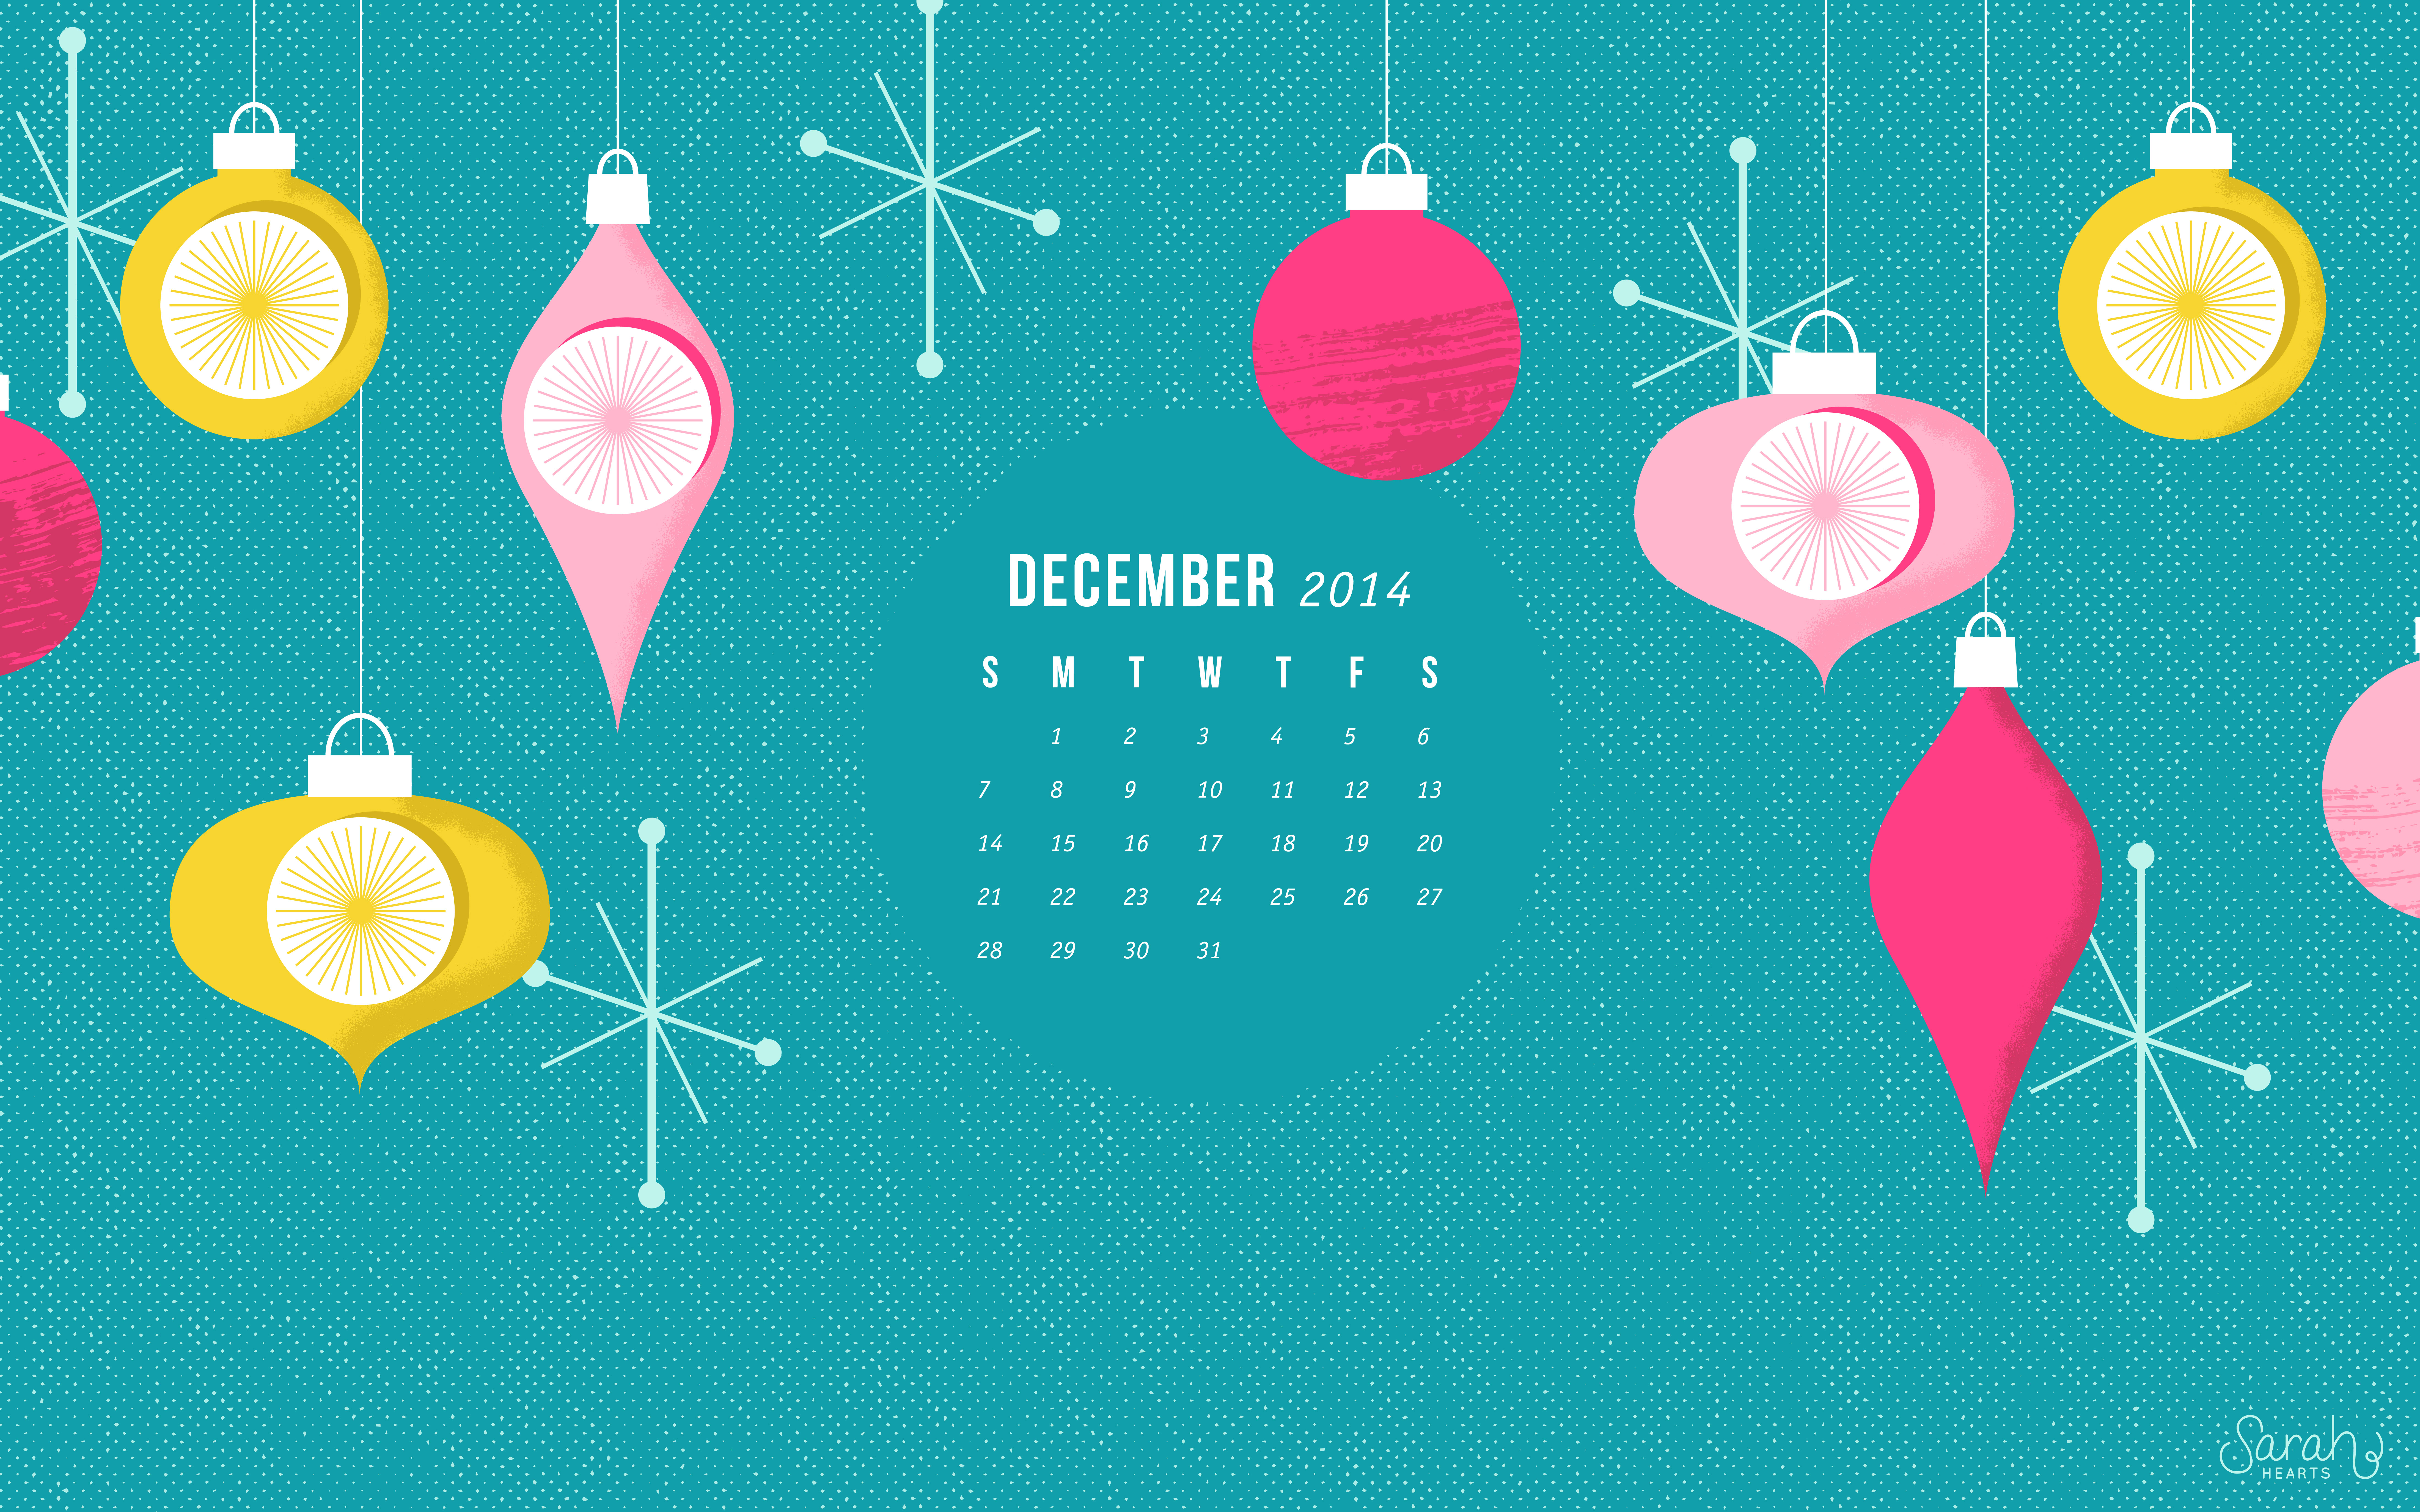 Cute Calendar Wallpaper : December calendar wallpaper sarah hearts